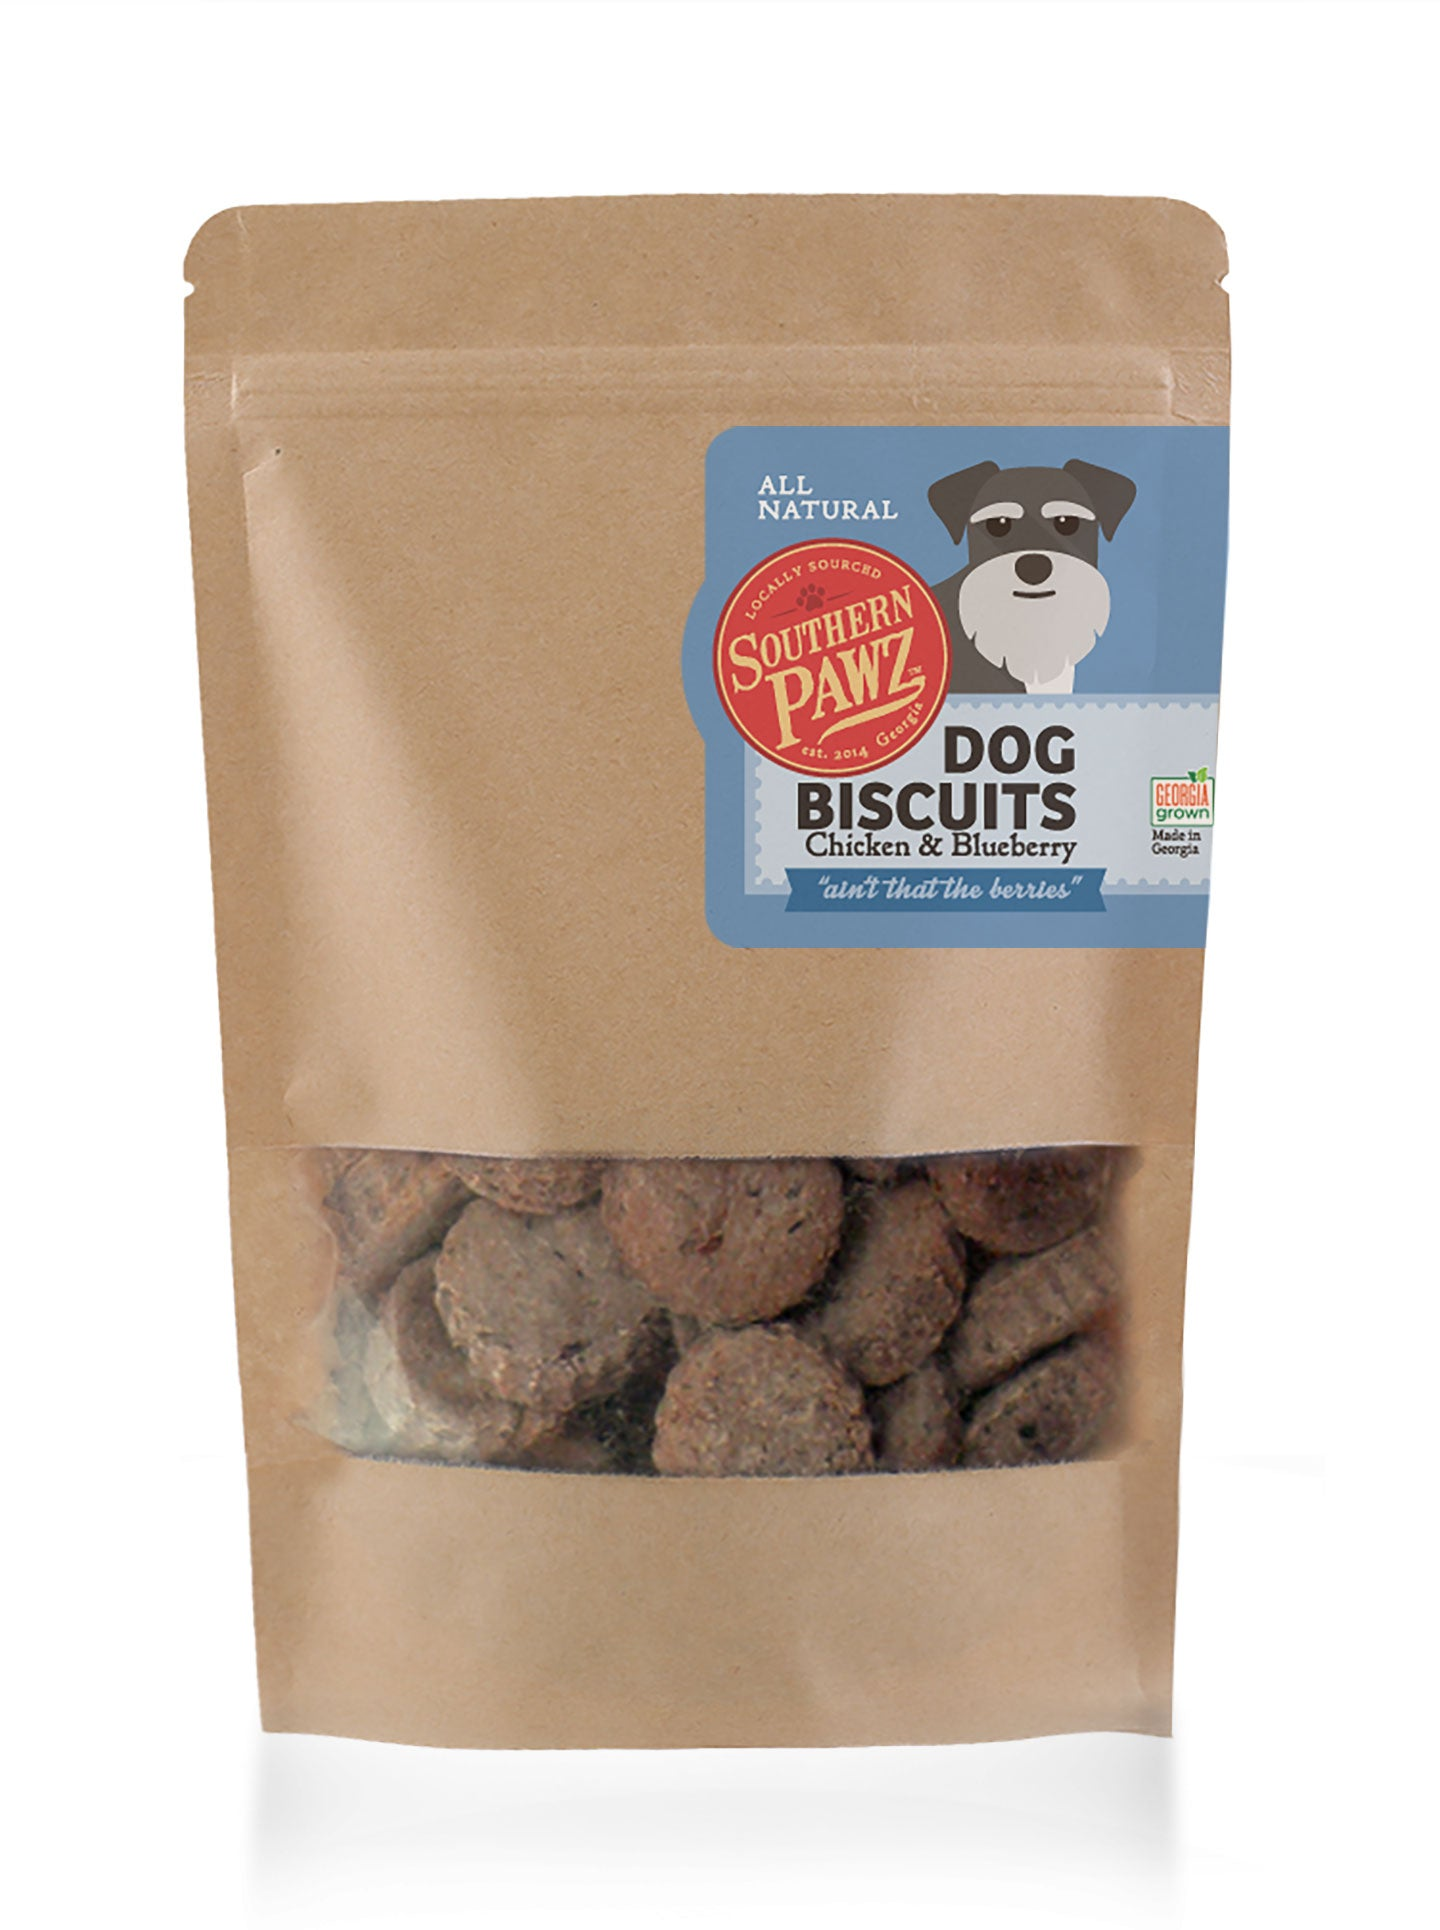 Dog Biscuits - Chicken and Blueberry 16 oz Resealable Bag